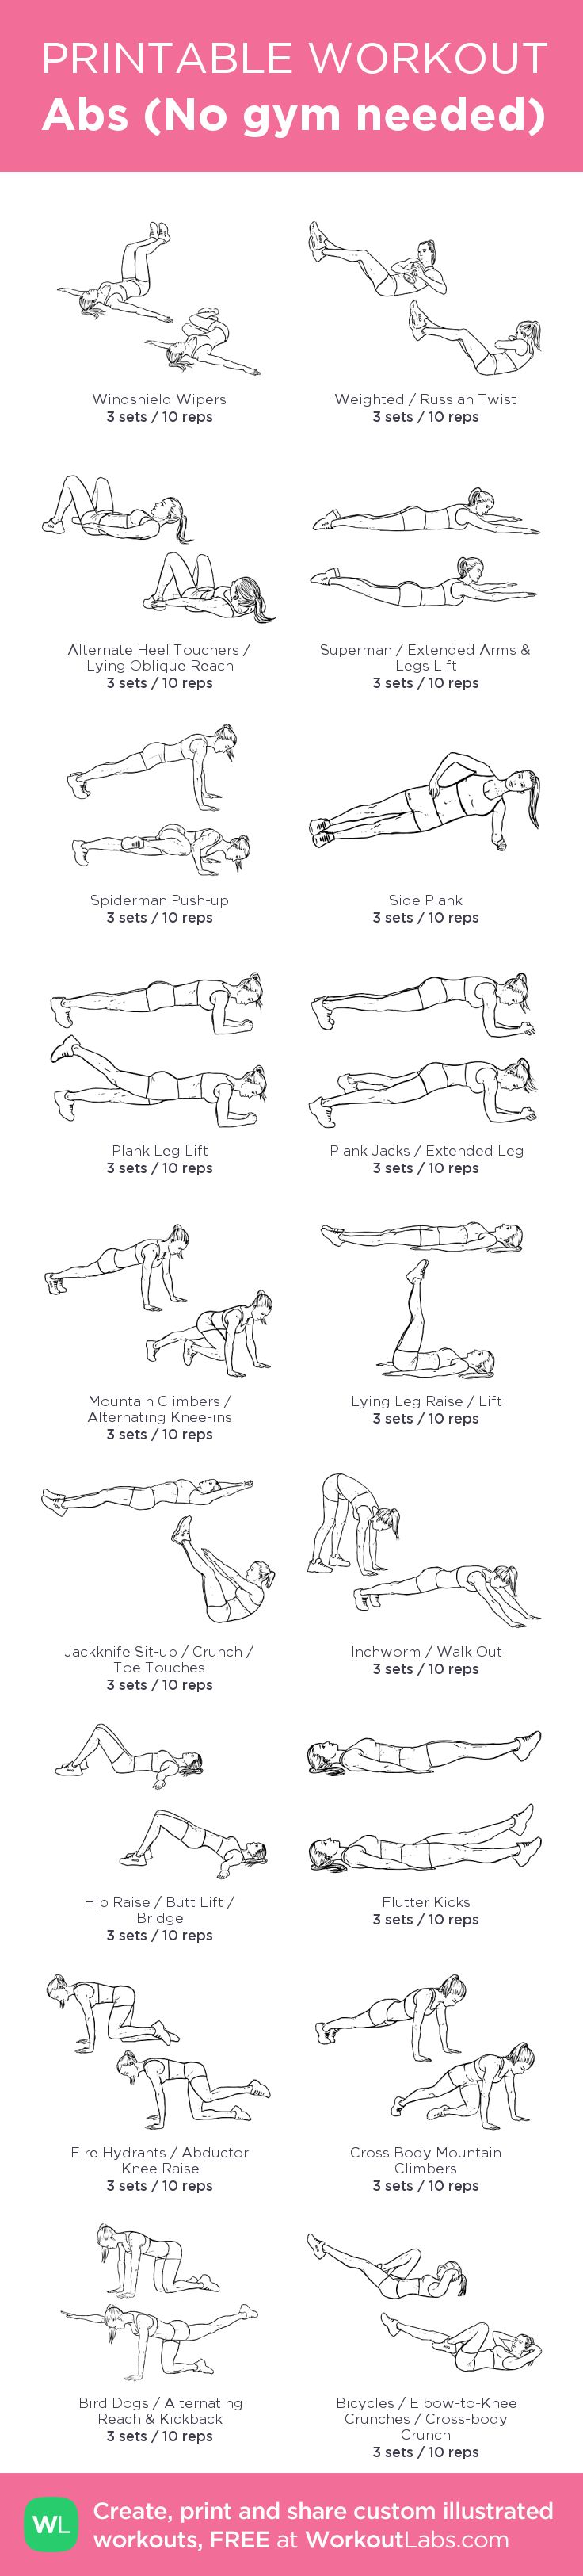 Abs (No gym needed) –my custom workout created at WorkoutLabs.com • Click through to download as printable PDF! #customworkout